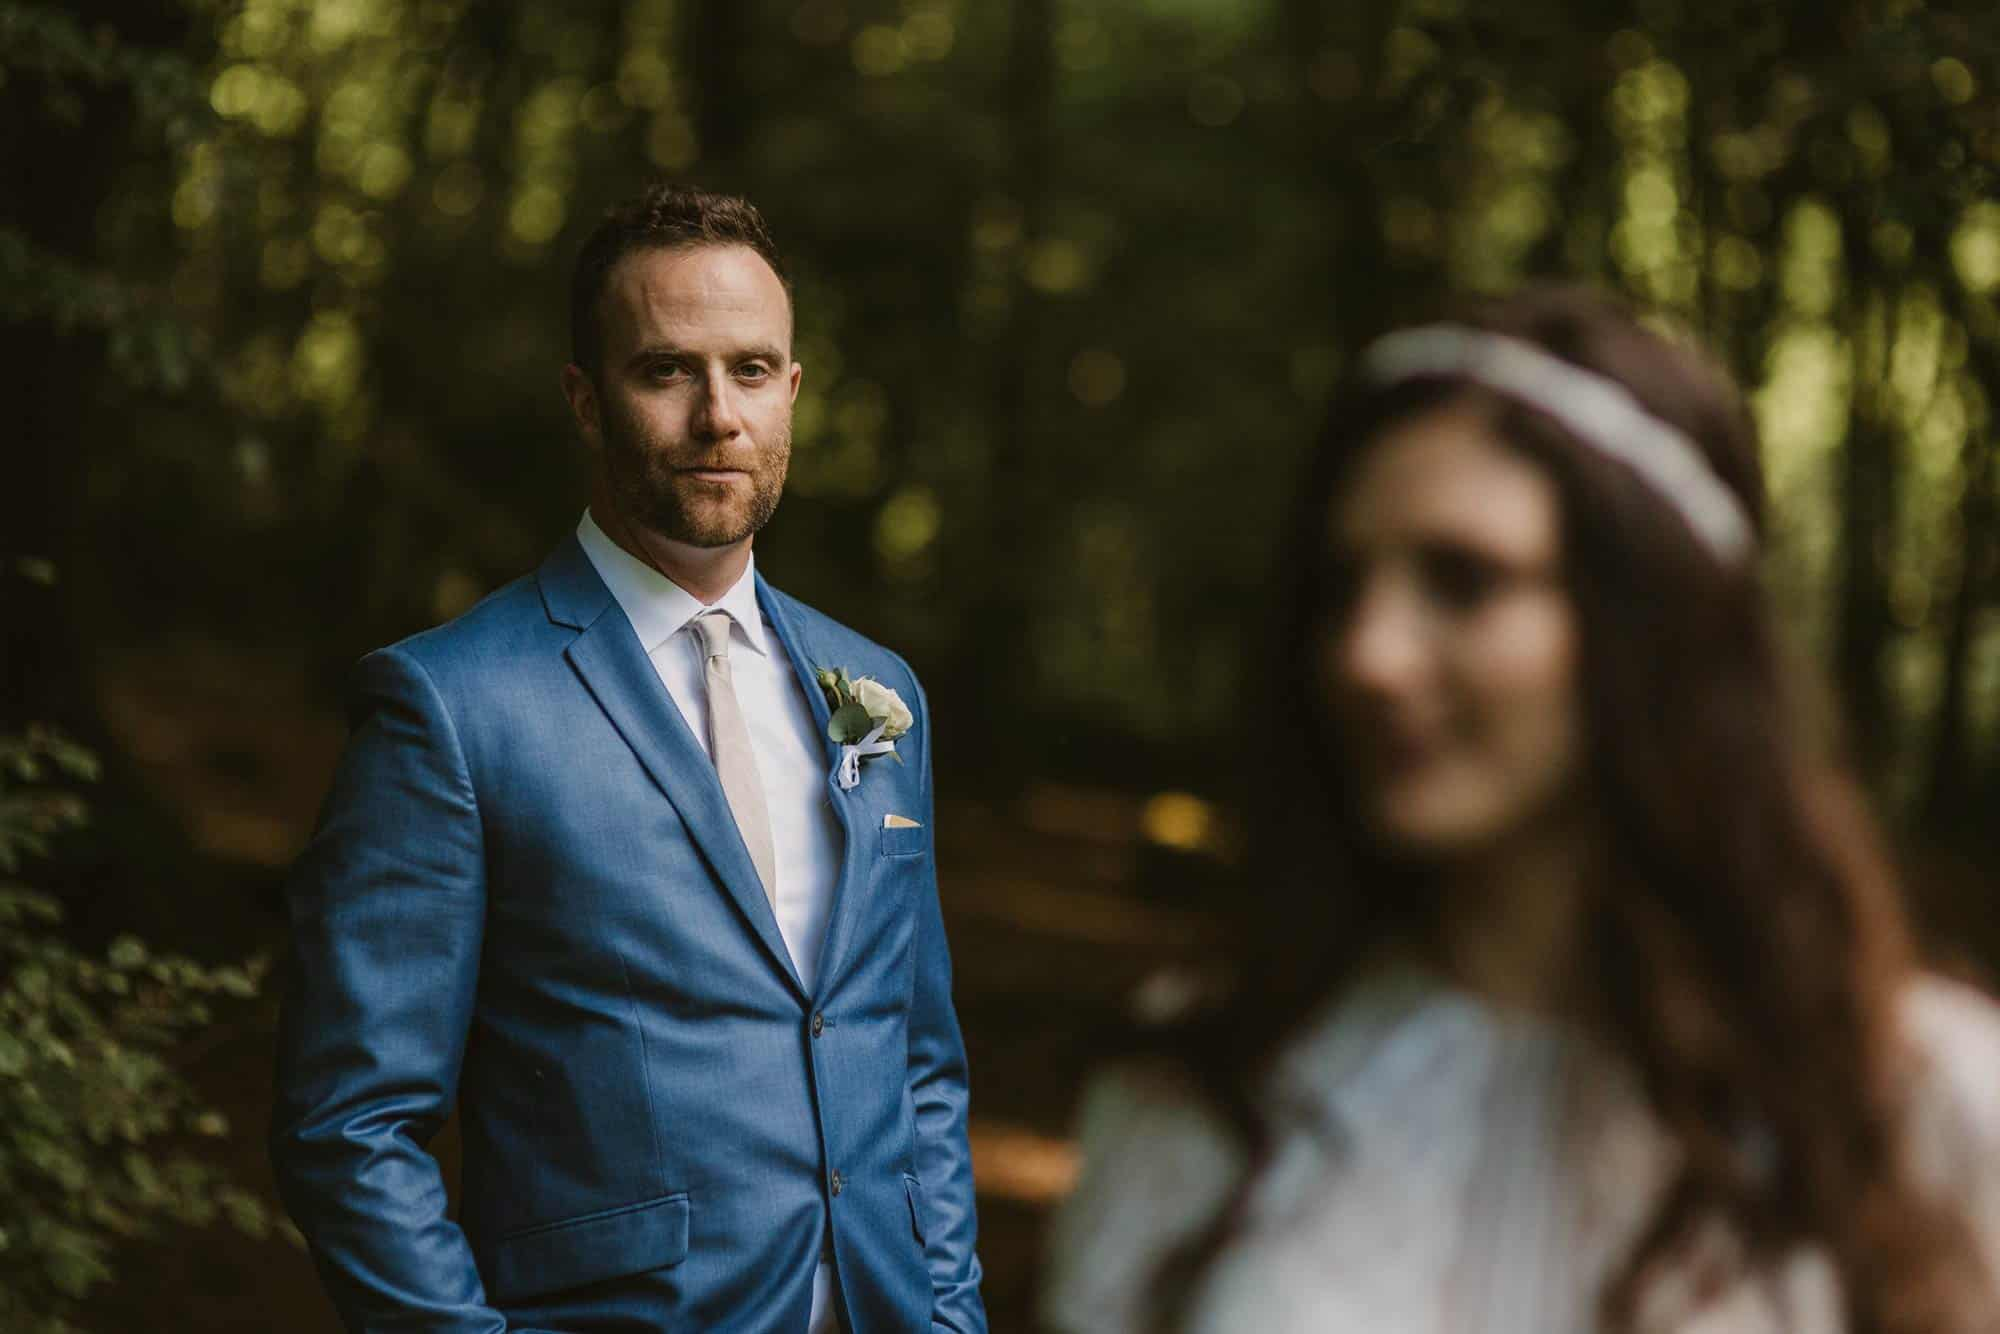 Elopement videographer Ireland, groom shot in forest